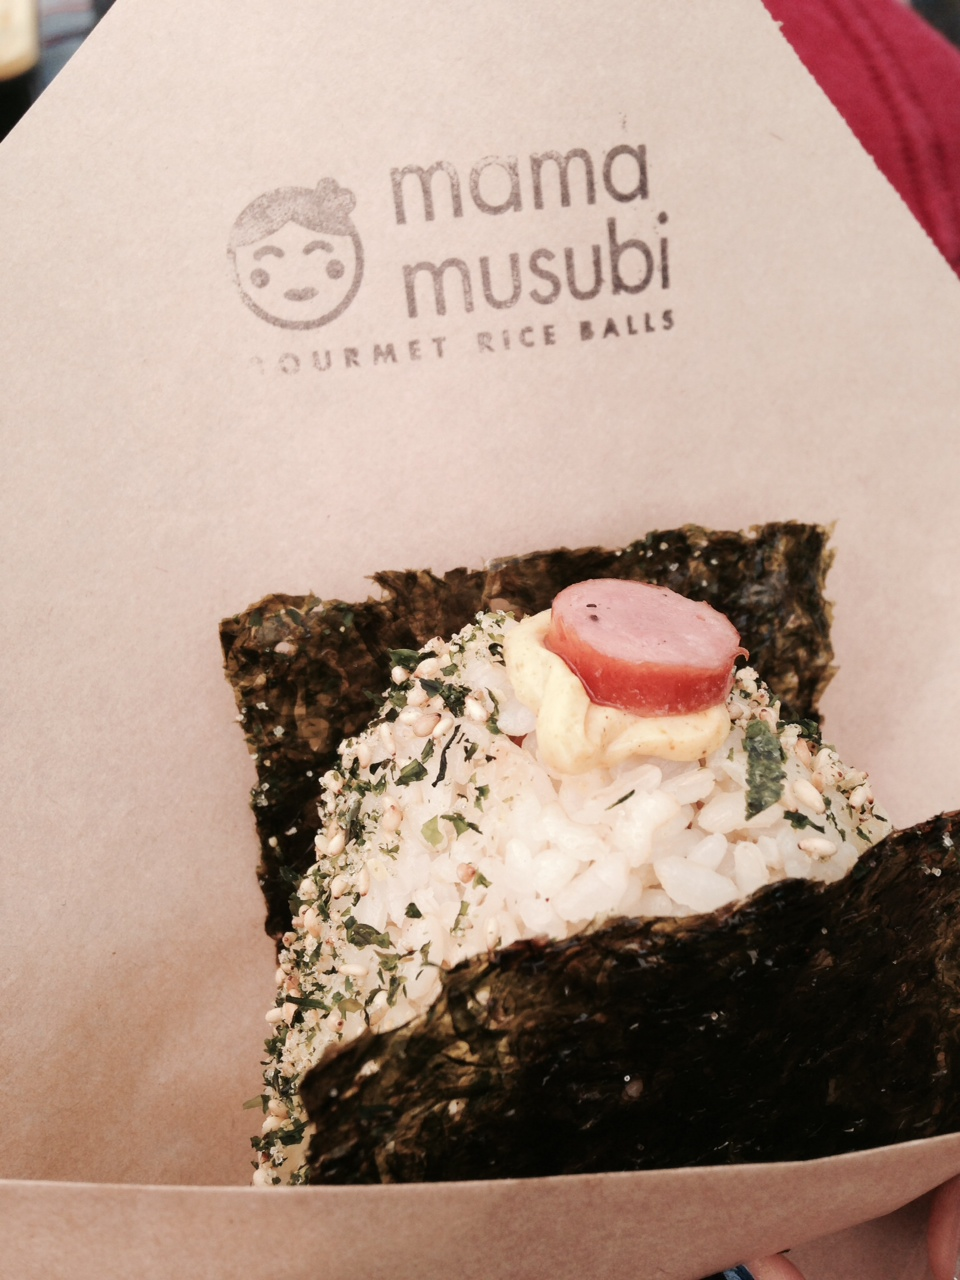 Courtesy of Mama Musubi